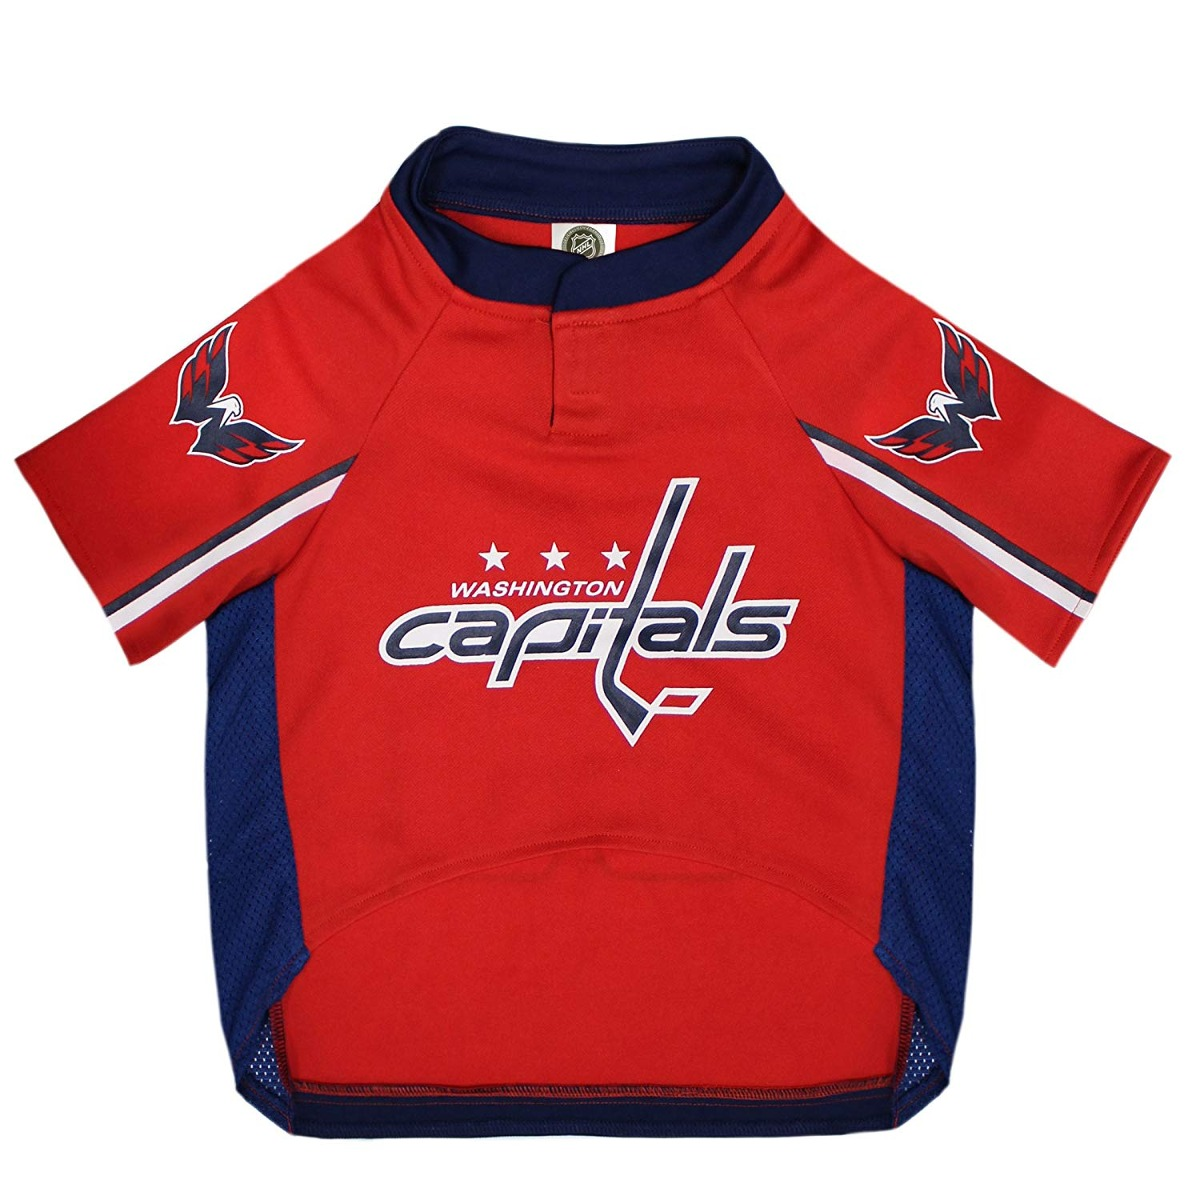 cheap for discount 444b8 3c1f4 Nhl Washington Capitals Jersey For Dogs & Cats, X-small. - L